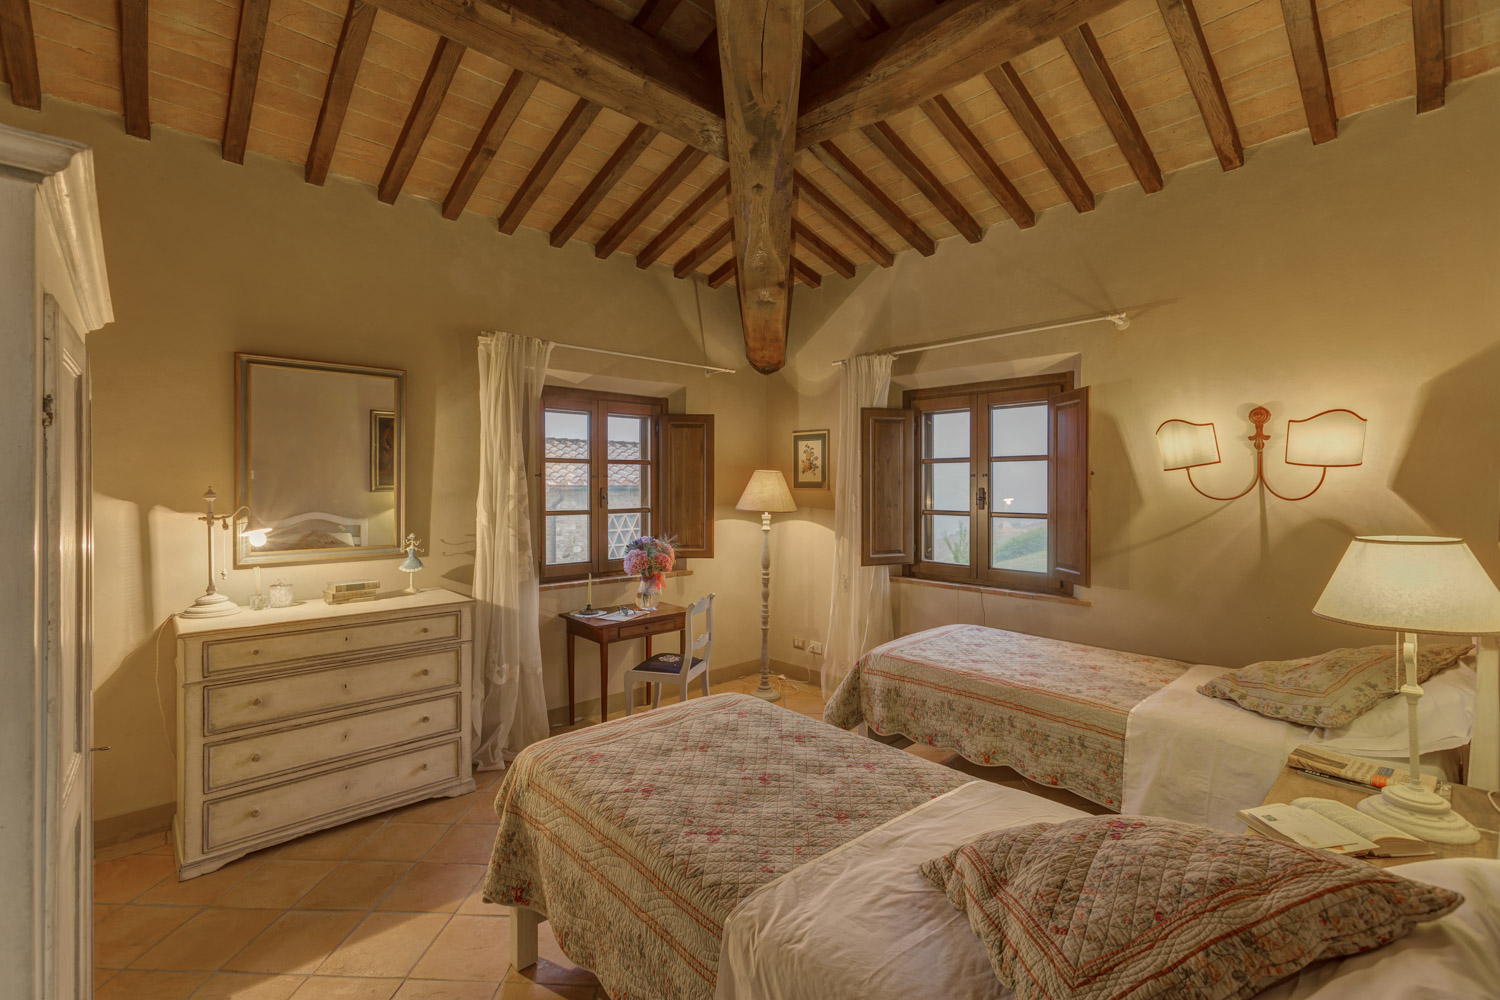 Matrimonio Di Lusso Toscana : Luxury room in tuscany with view of iano